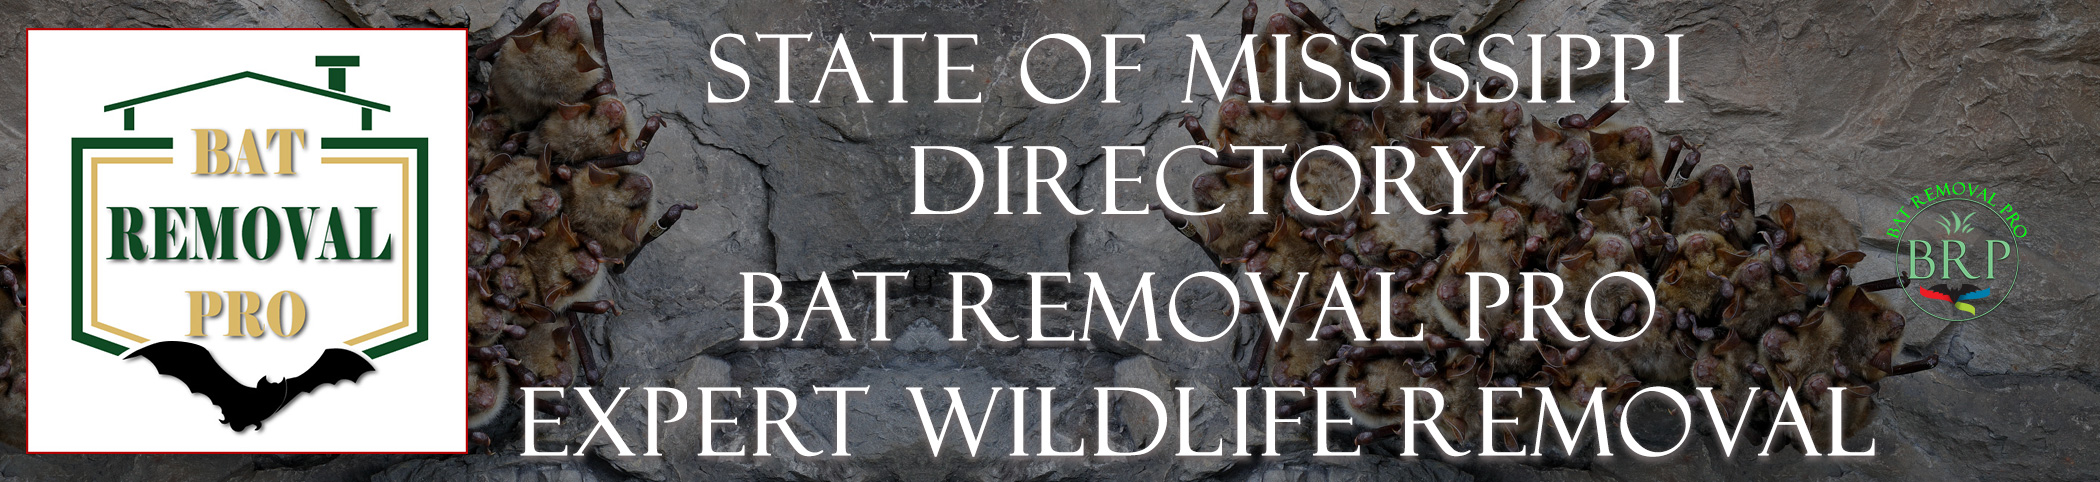 mississippi-bat-removal-at-bat-removal-pro-header-image